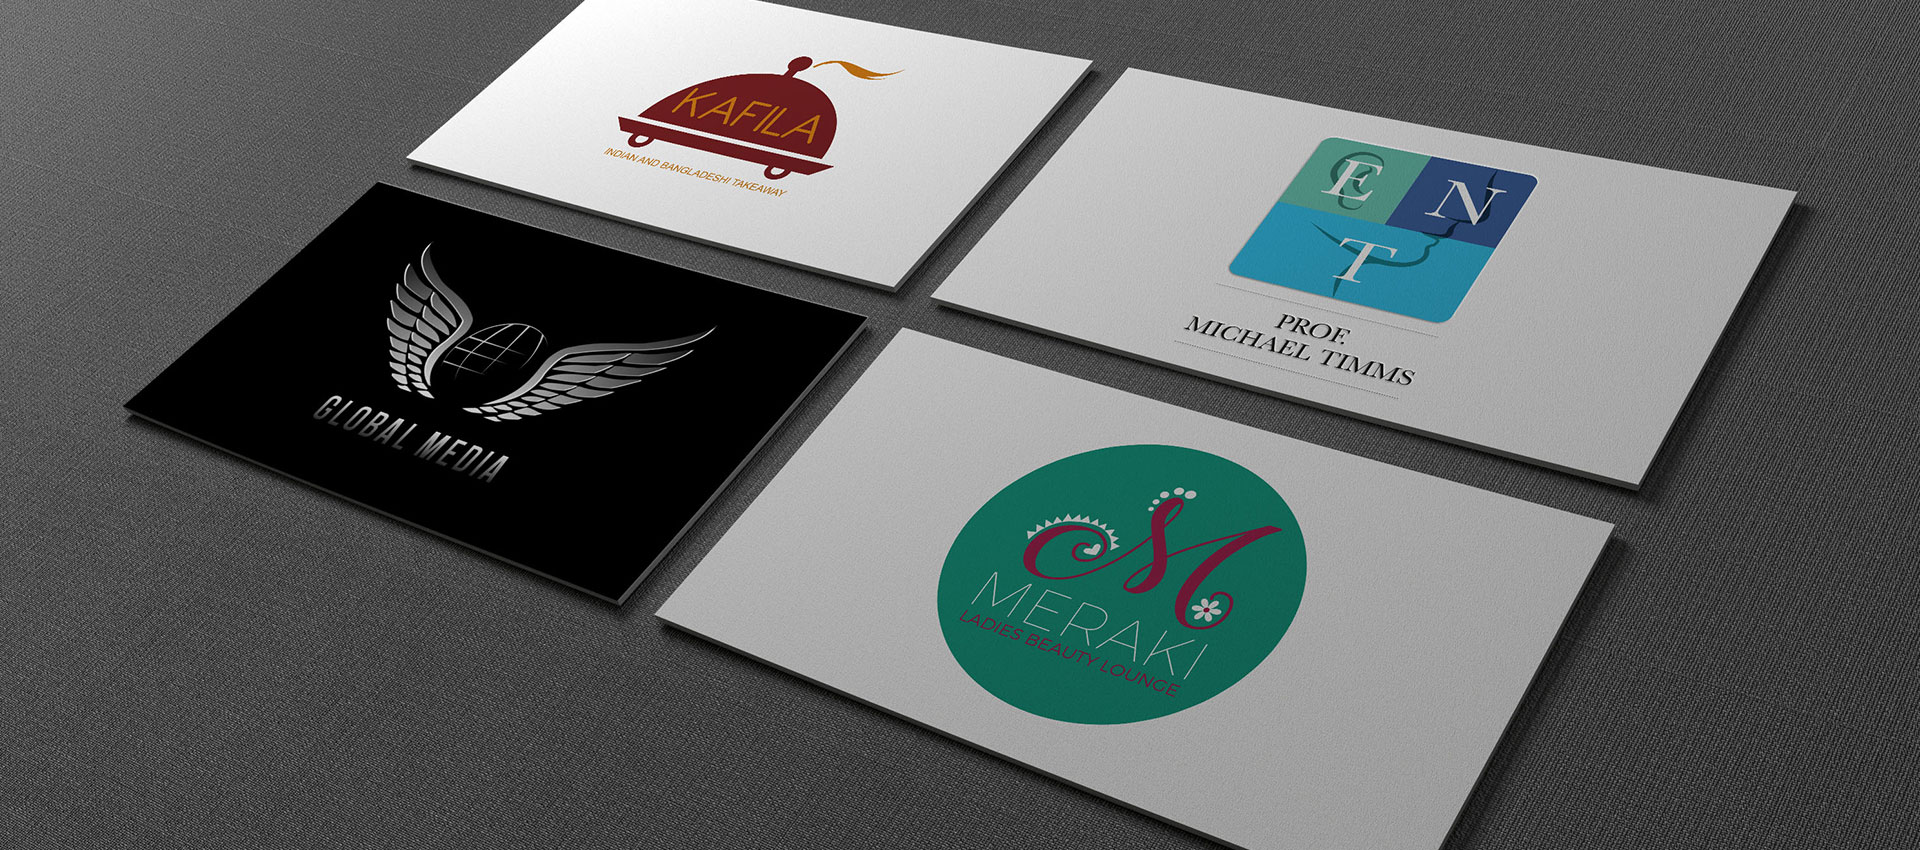 Branding and graphics design